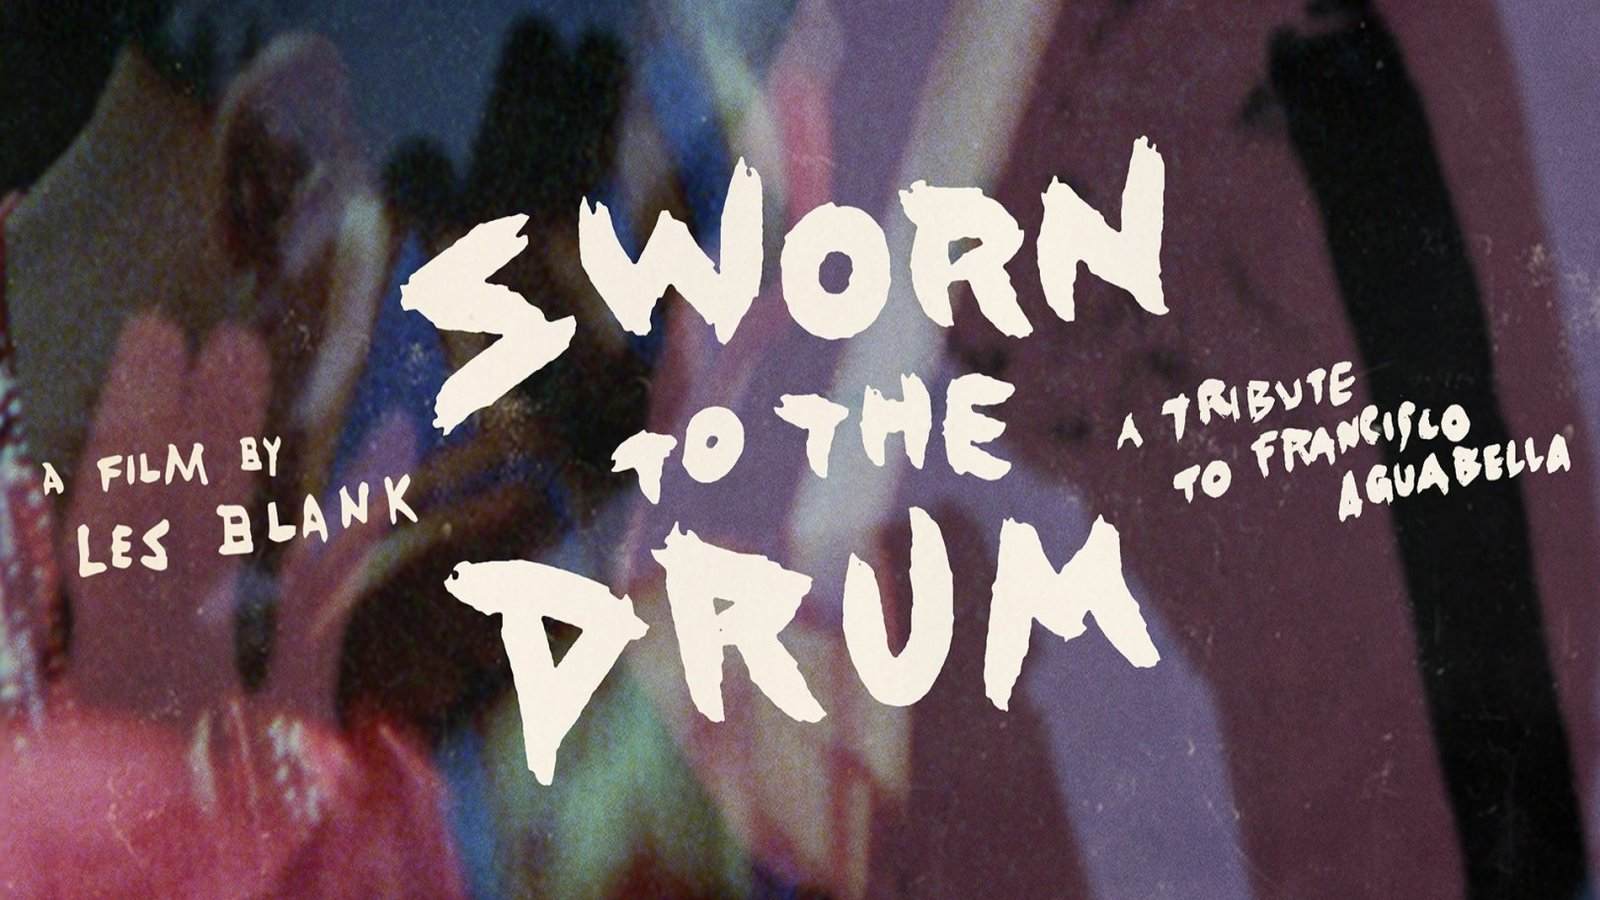 Sworn to the Drum: A Tribute to Francisco Aguabella